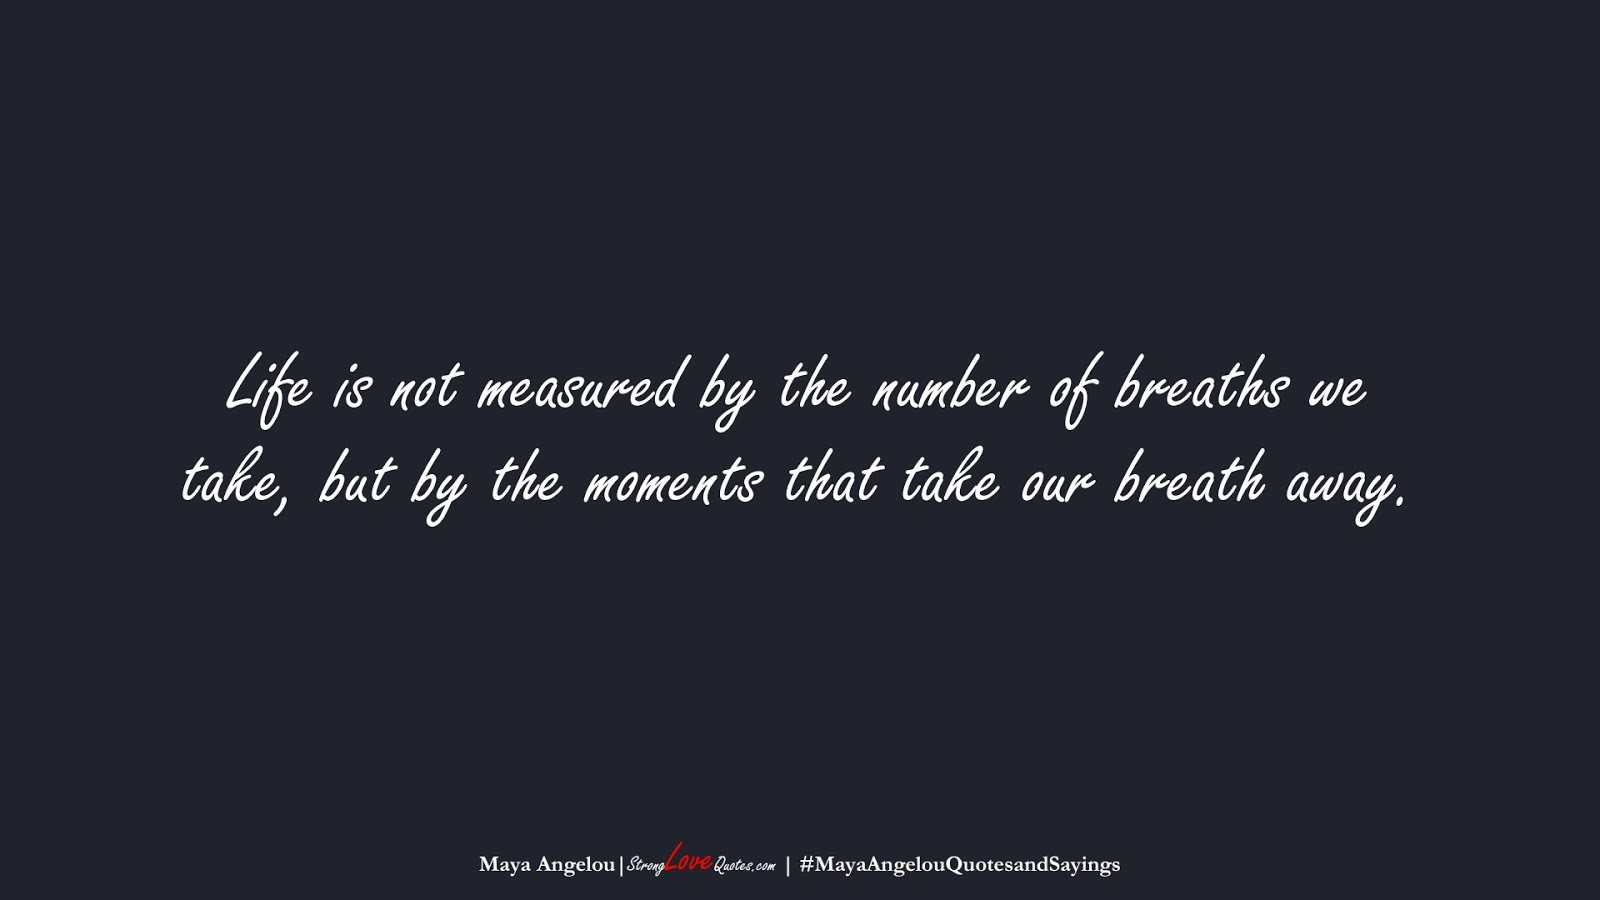 Life is not measured by the number of breaths we take, but by the moments that take our breath away. (Maya Angelou);  #MayaAngelouQuotesandSayings